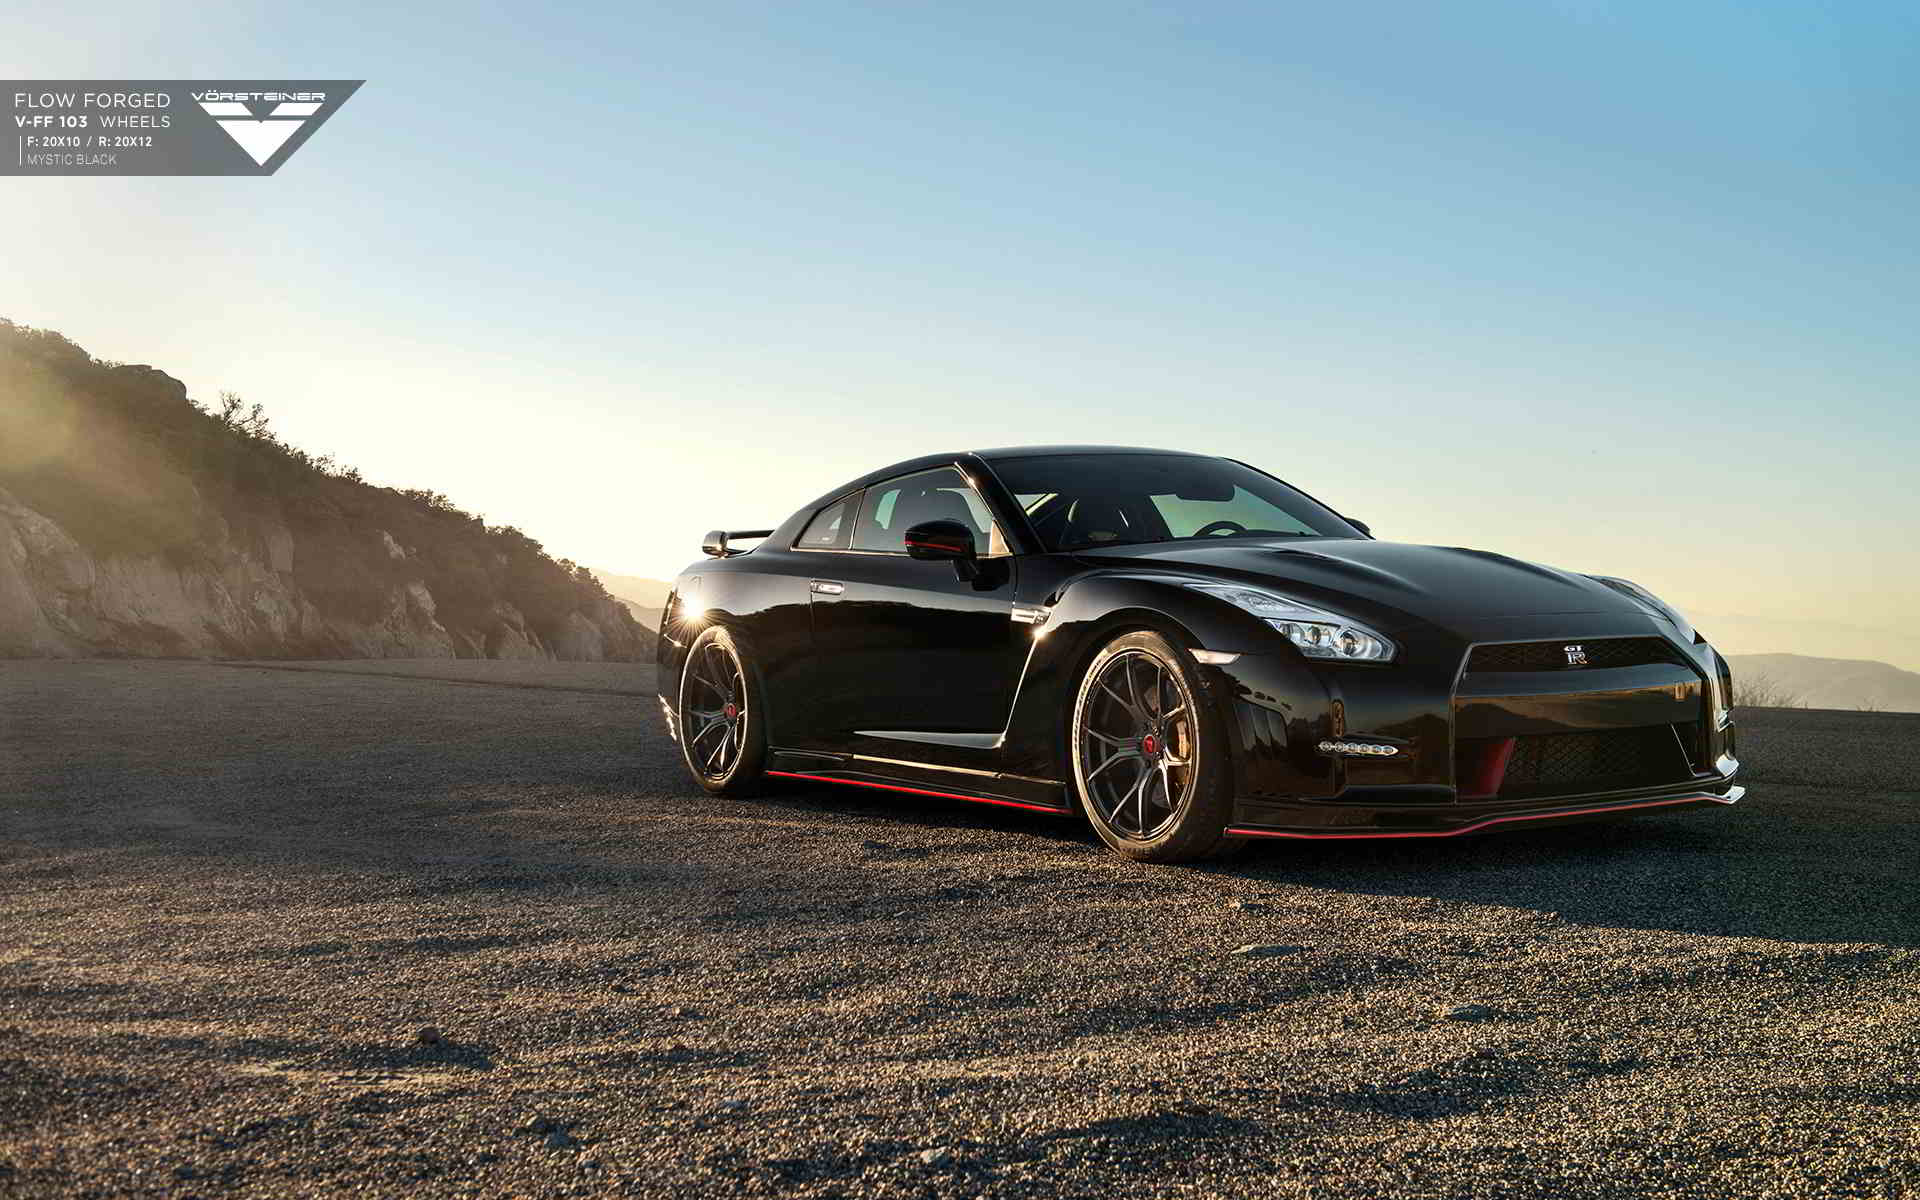 Full HD Cool Car Wallpapers That Look Amazing Free Download - Black cool cars